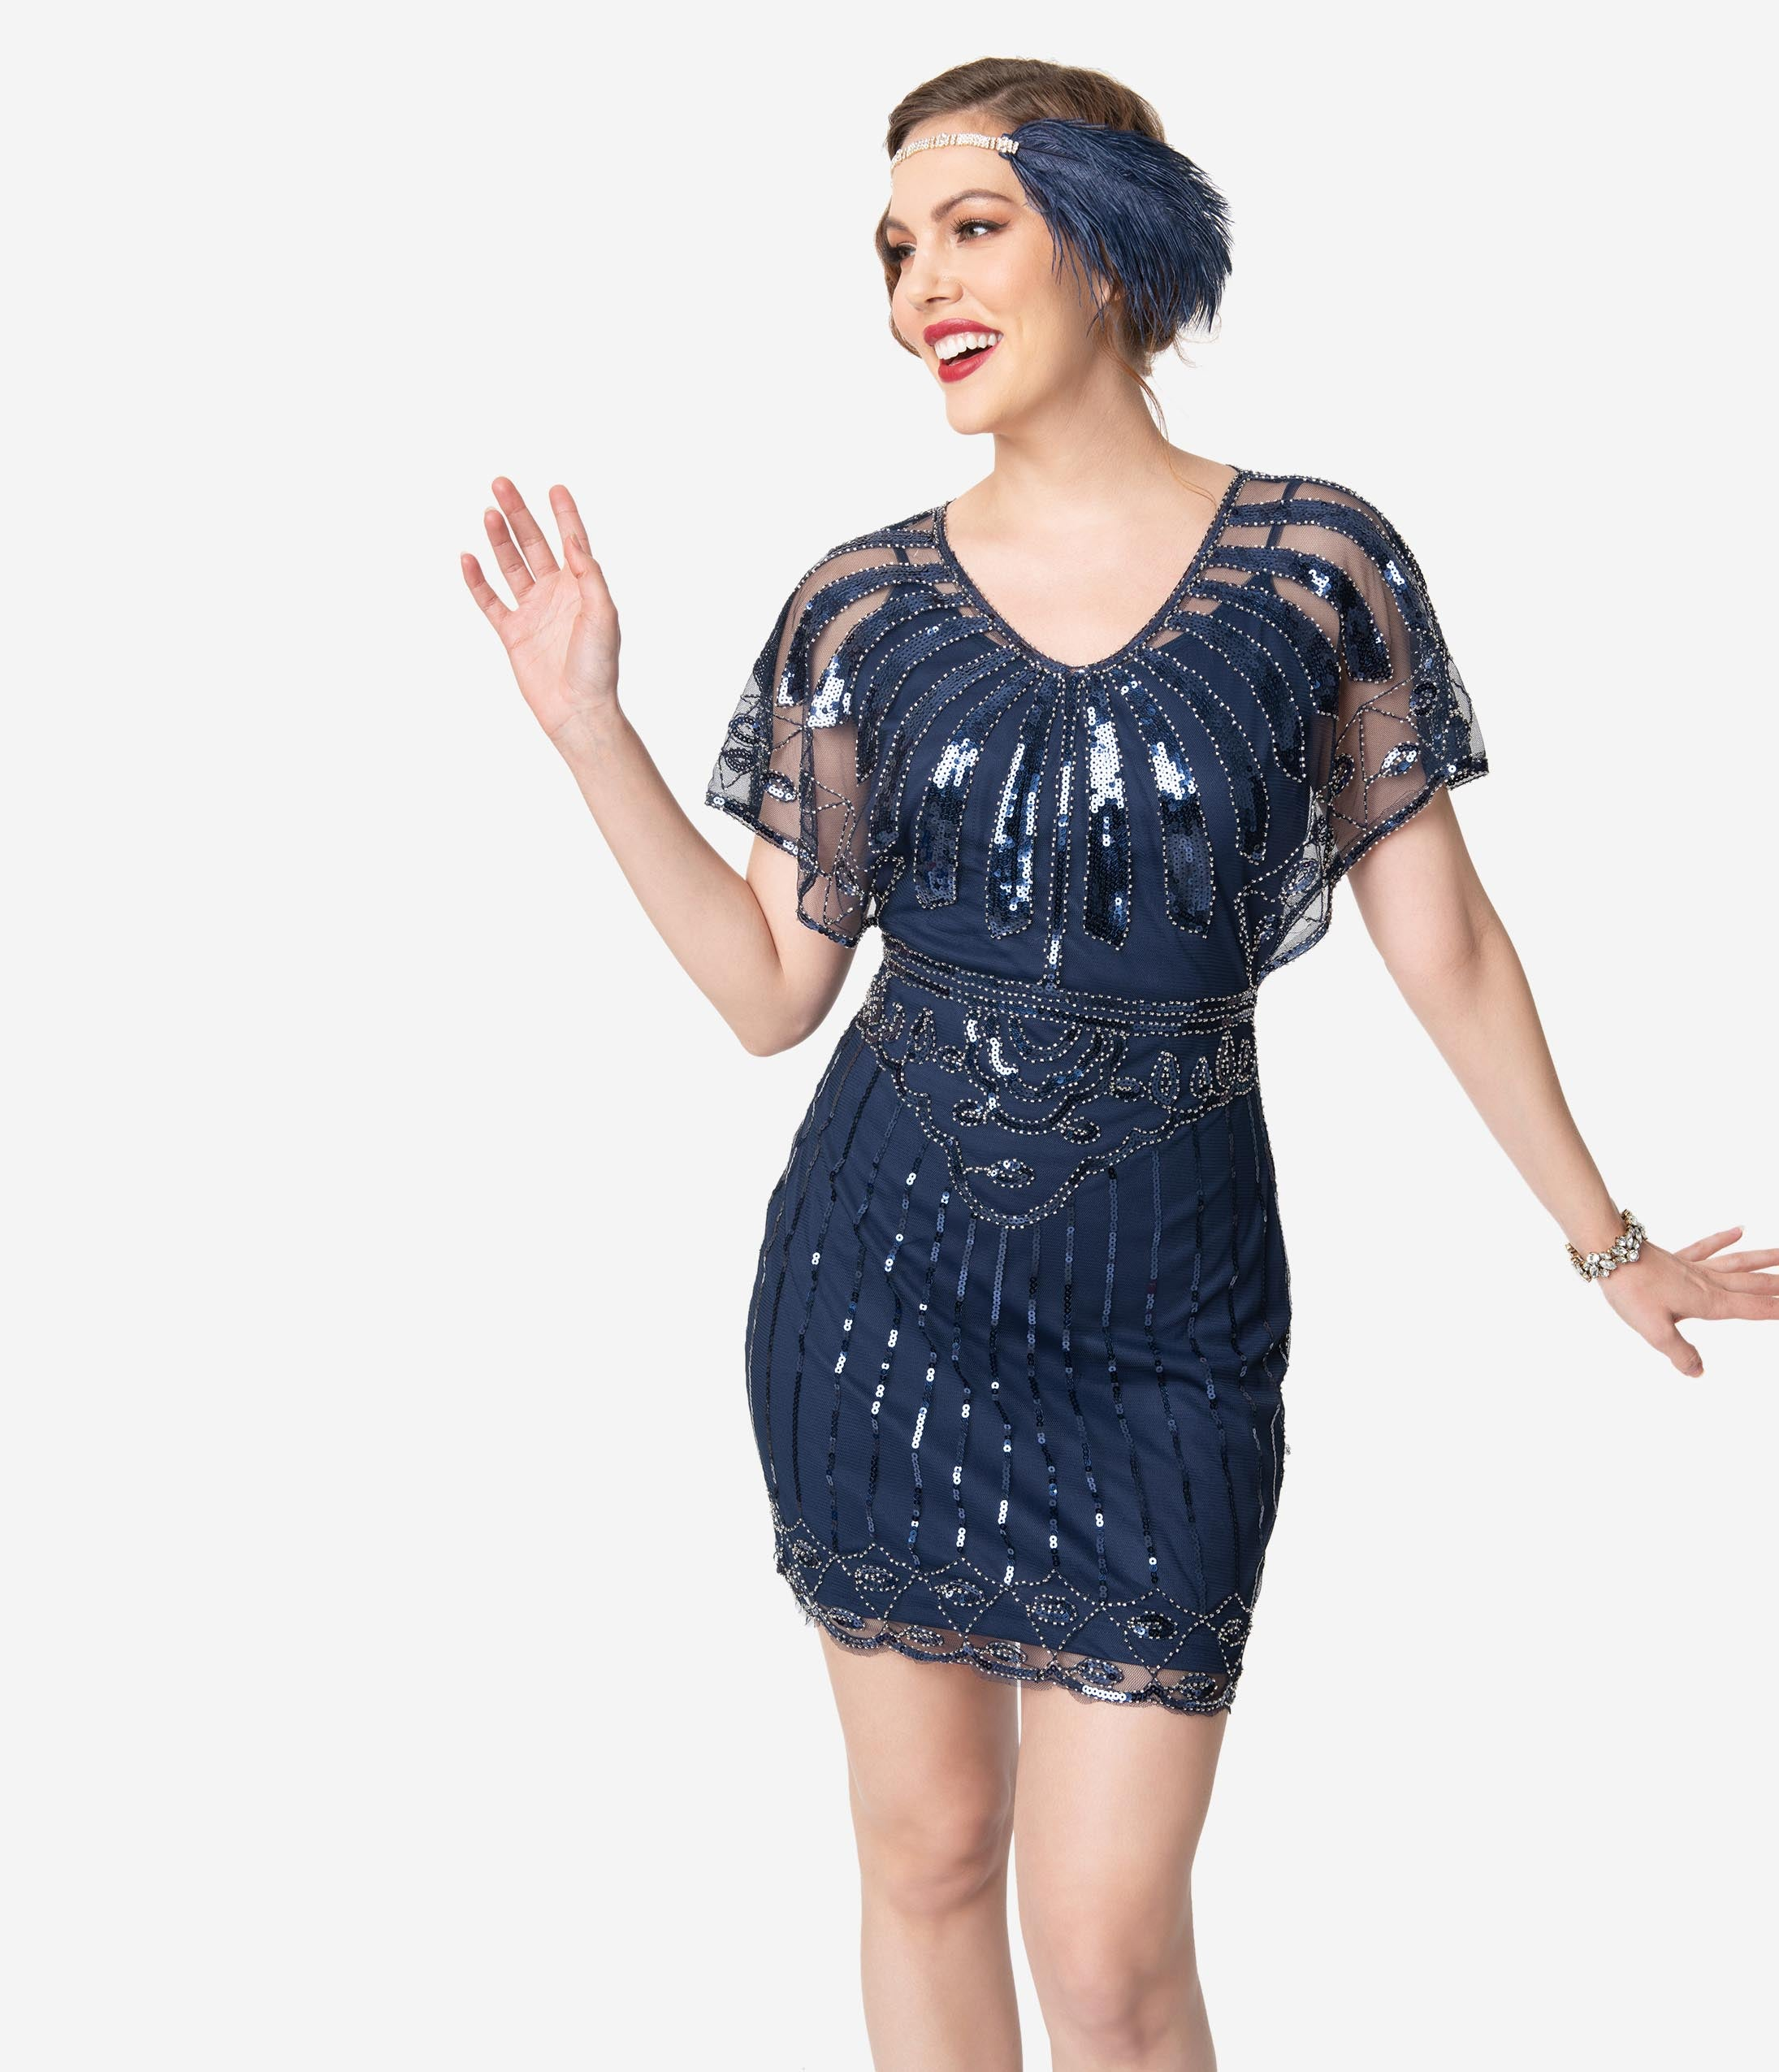 Roaring 20s Costumes- Flapper Costumes, Gangster Costumes Unique Vintage Navy Blue Beaded Angel Sleeve Oxsana Flapper Dress $98.00 AT vintagedancer.com